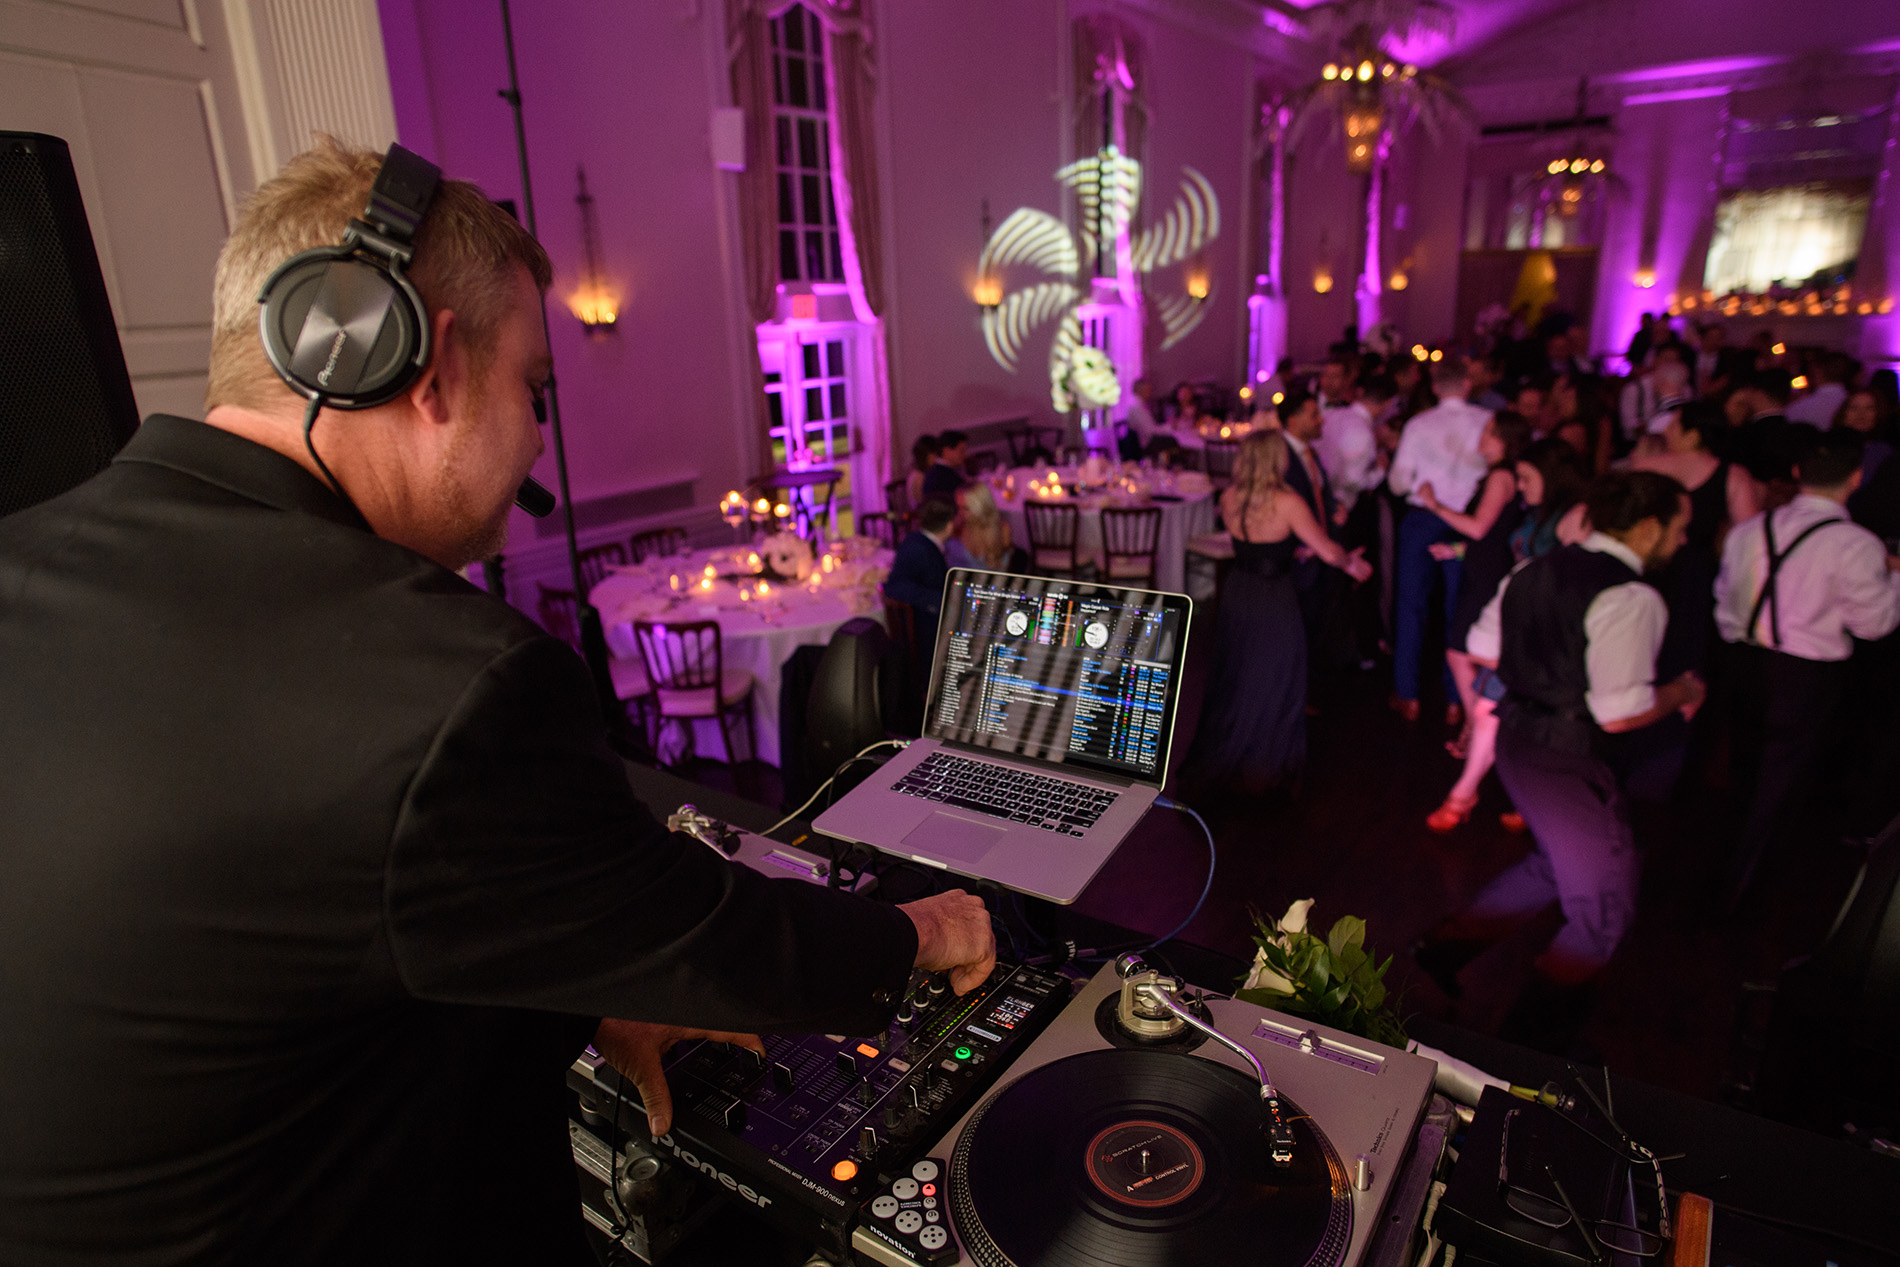 correlation-productions-wedding-dj-and-lighting - Correlation Productions | CT Wedding DJ CT Wedding Lighting CT Wedding Video NY Wedding Lighting ... & correlation-productions-wedding-dj-and-lighting - Correlation ...